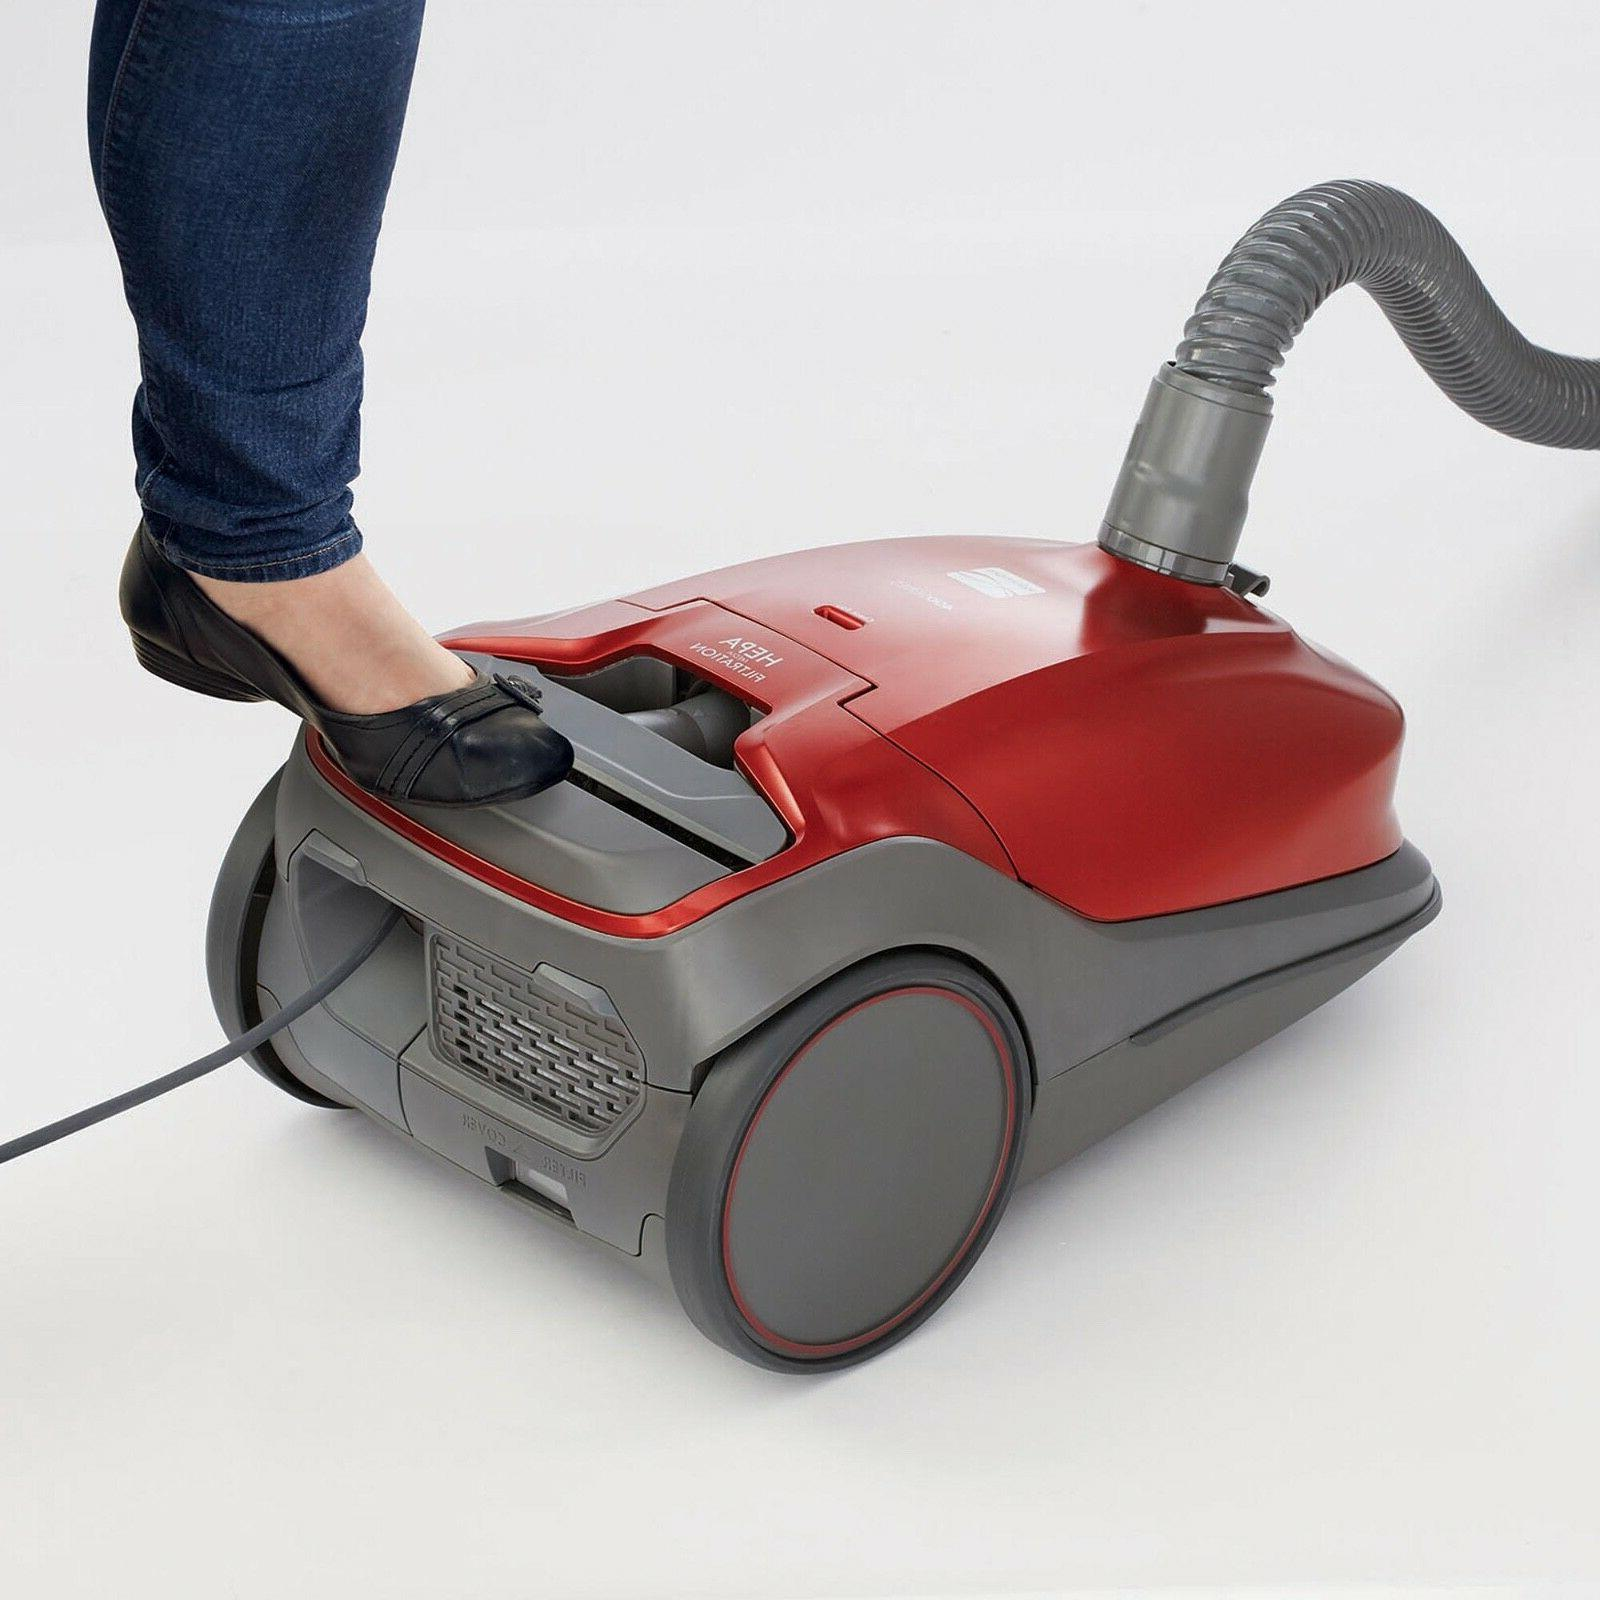 Eureka Mighty Mite 3670G Corded Canister Vacuum Cleaner,